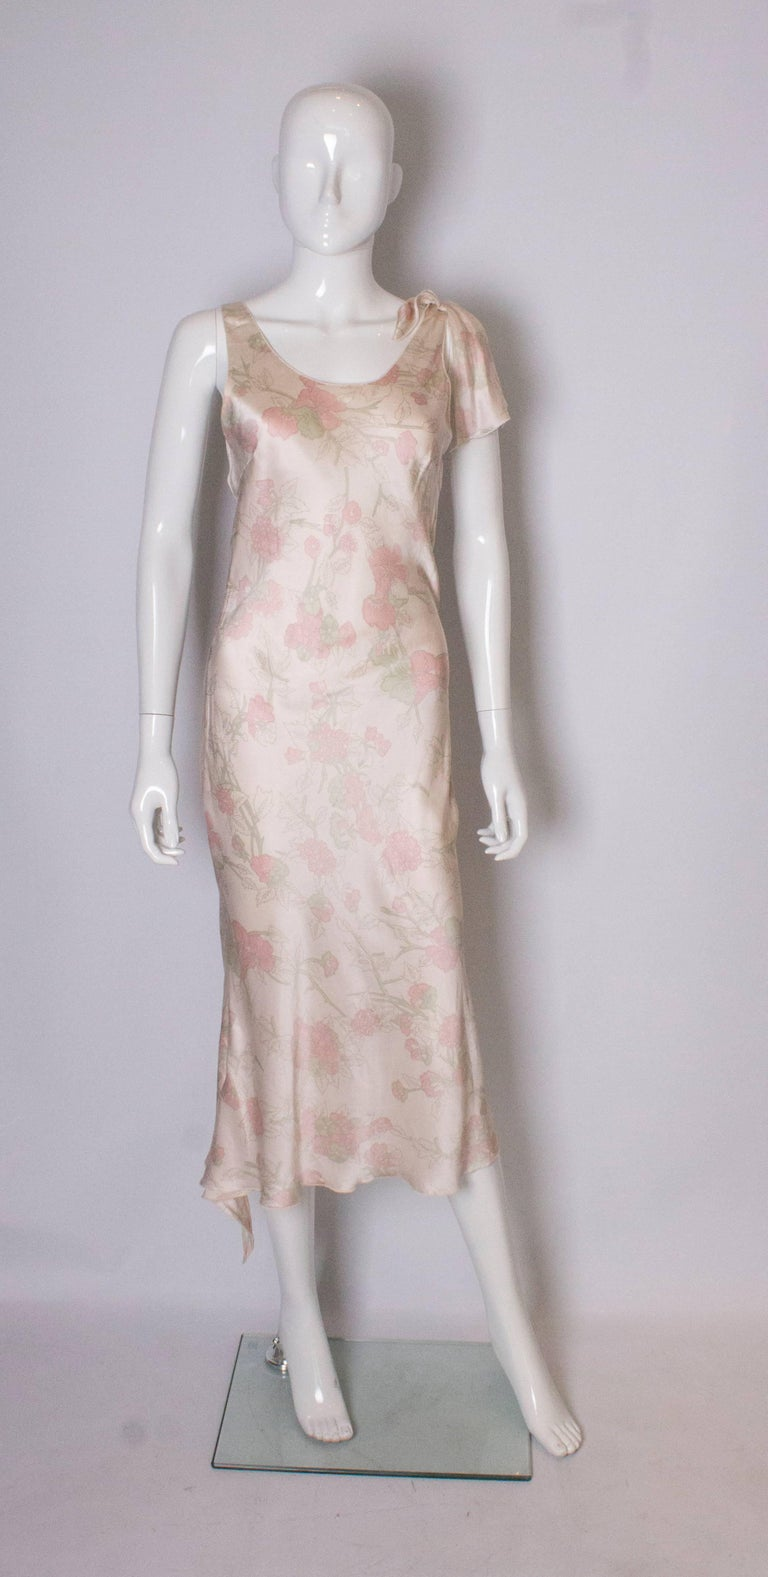 A pretty silk  slip dress or night dress by Ungaro. In a a pink floral print, the dress is bias cut and has a bow detail on one shoulder